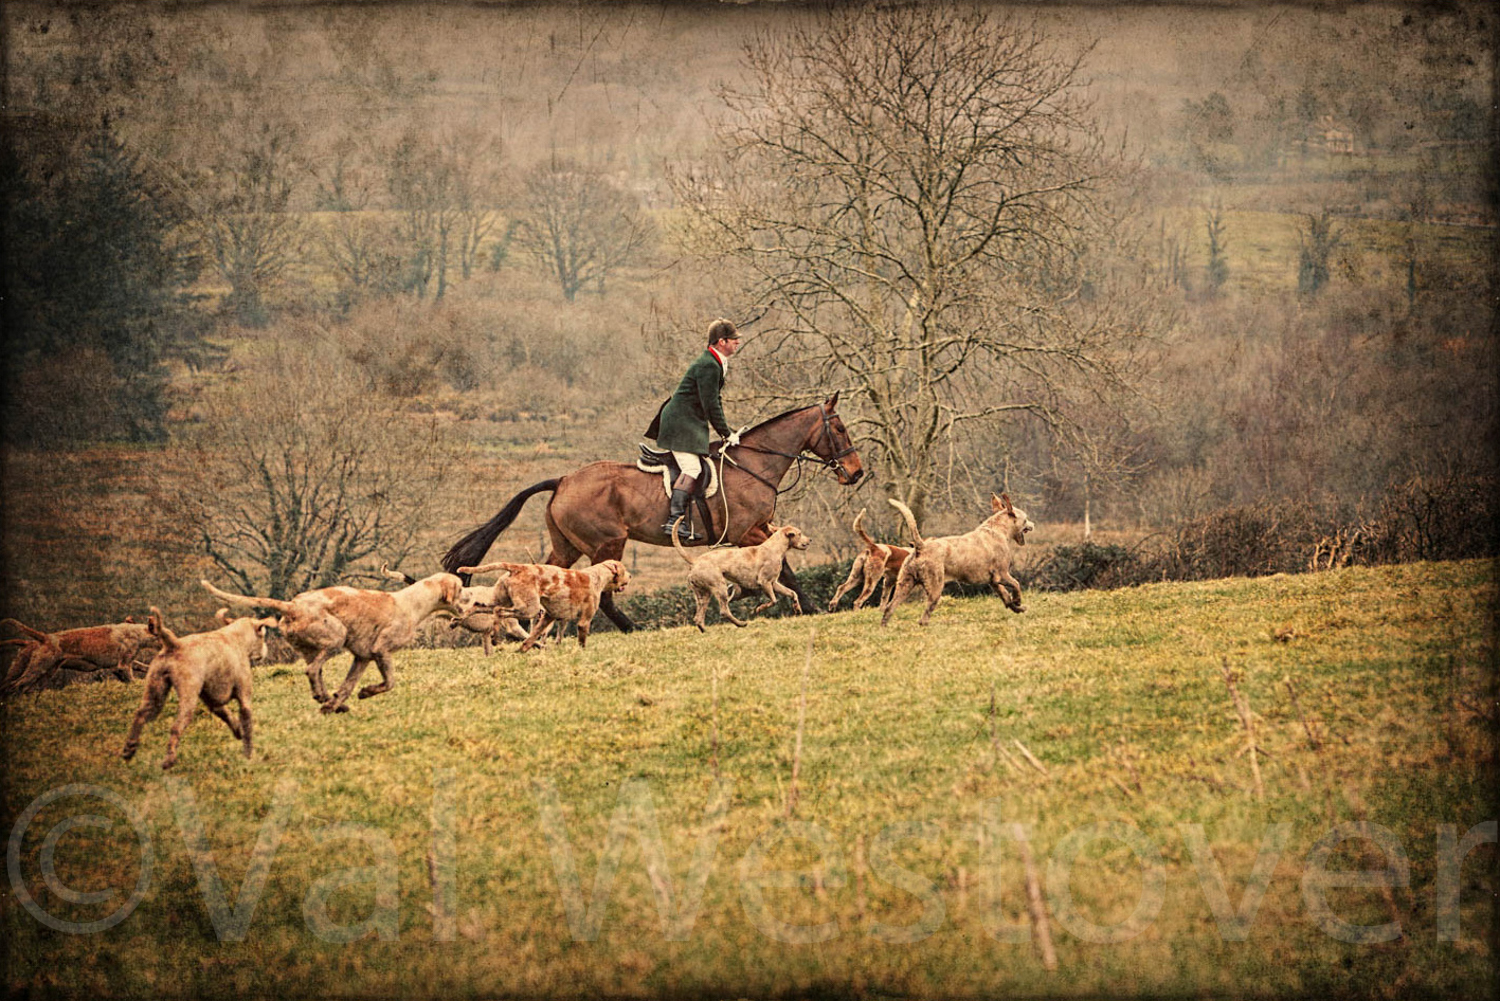 val-westover-photography--23.jpg